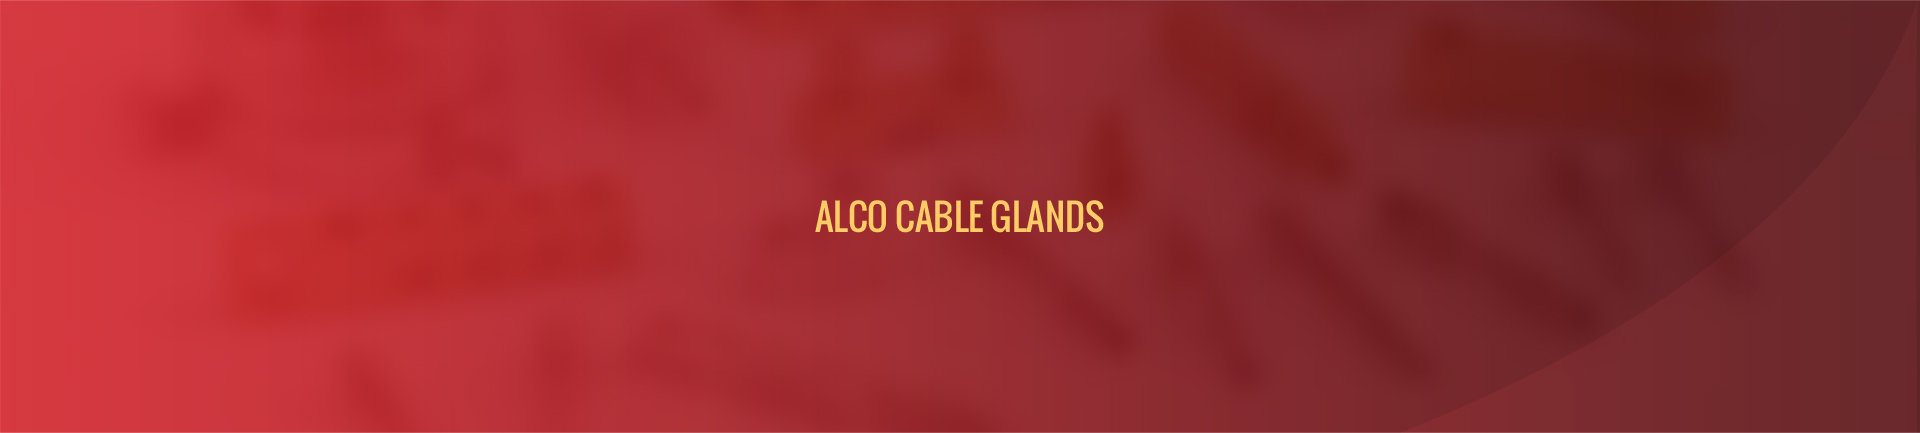 alco-cable-glands-banner